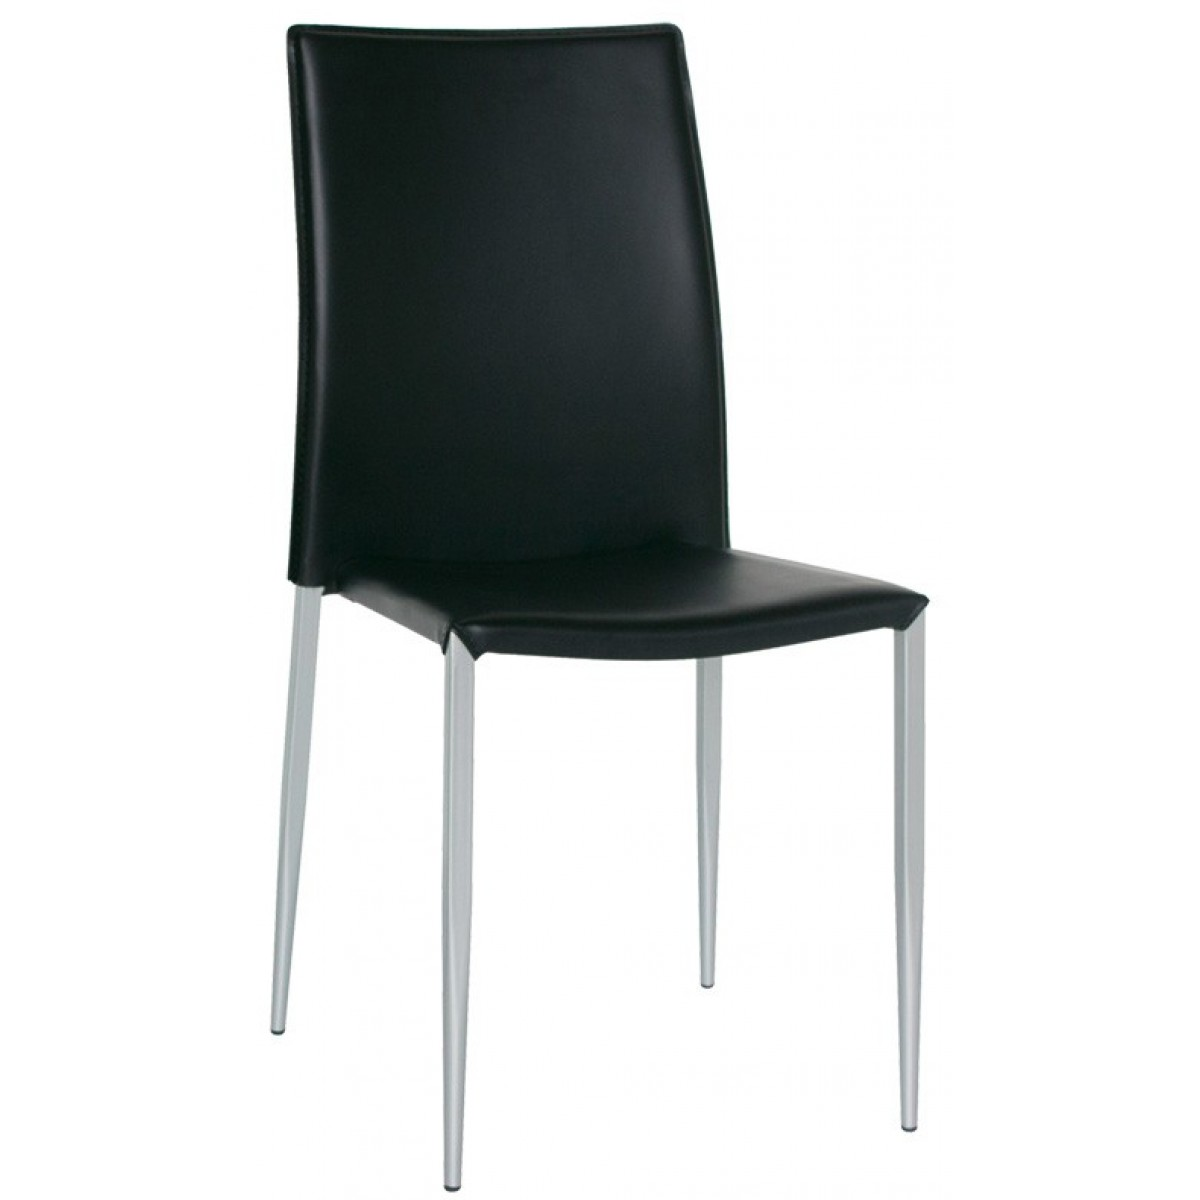 Sedia versatile rivestita in ecopelle di colore nero per for Sedia design ecopelle